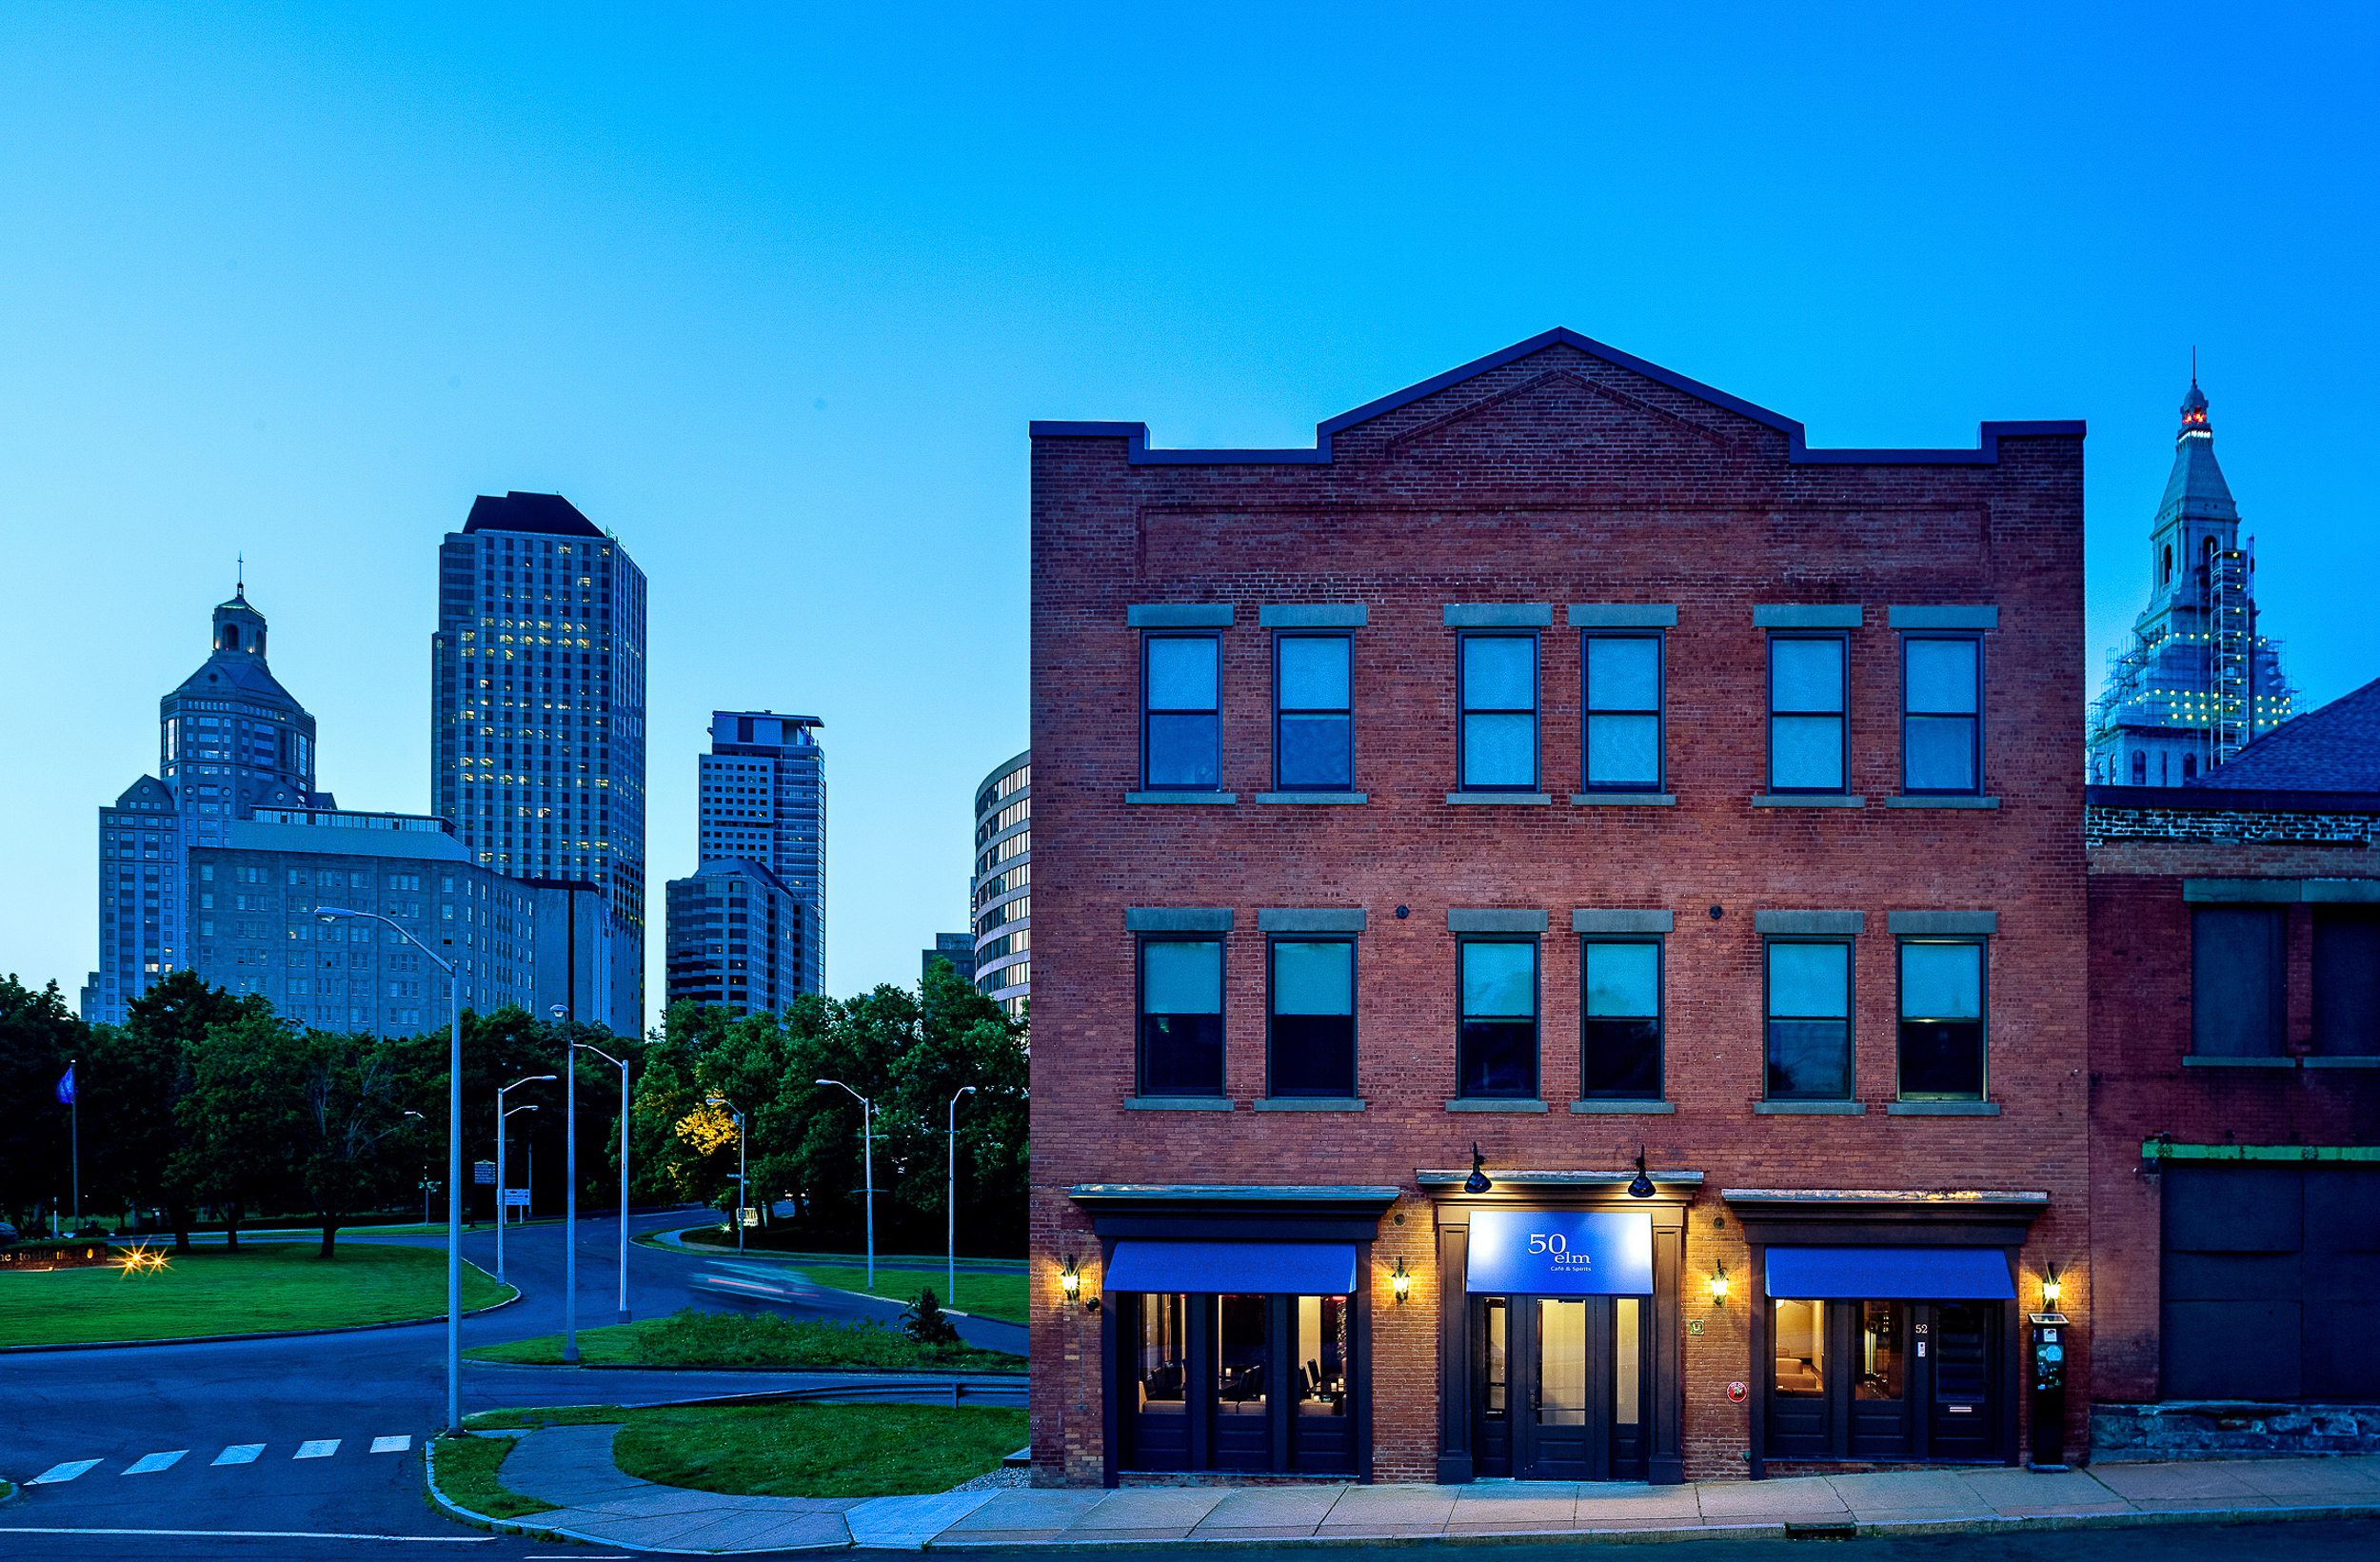 Hartford skyline and 50 Elm Cafe & Spirits, Hartford, CT. Architectural design by John Emerson Washington, Architect.